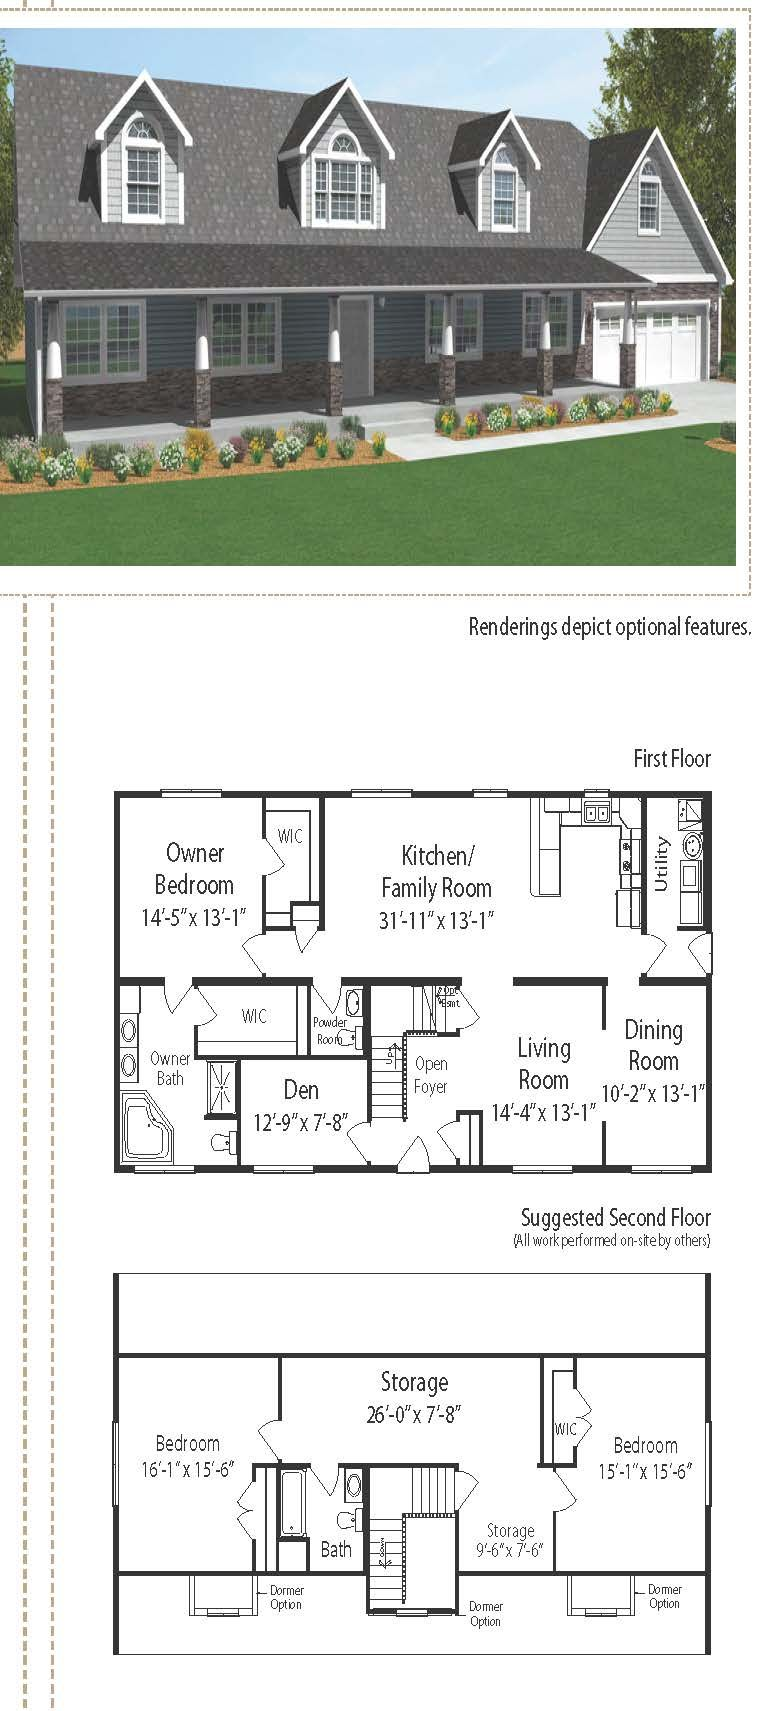 This Country Cape Cod Style Home Is 2561 Square Feet The Exterior Of The Home Consists Of Half Stone Pillars In Floor Plans Cape Cod Style House House Layouts